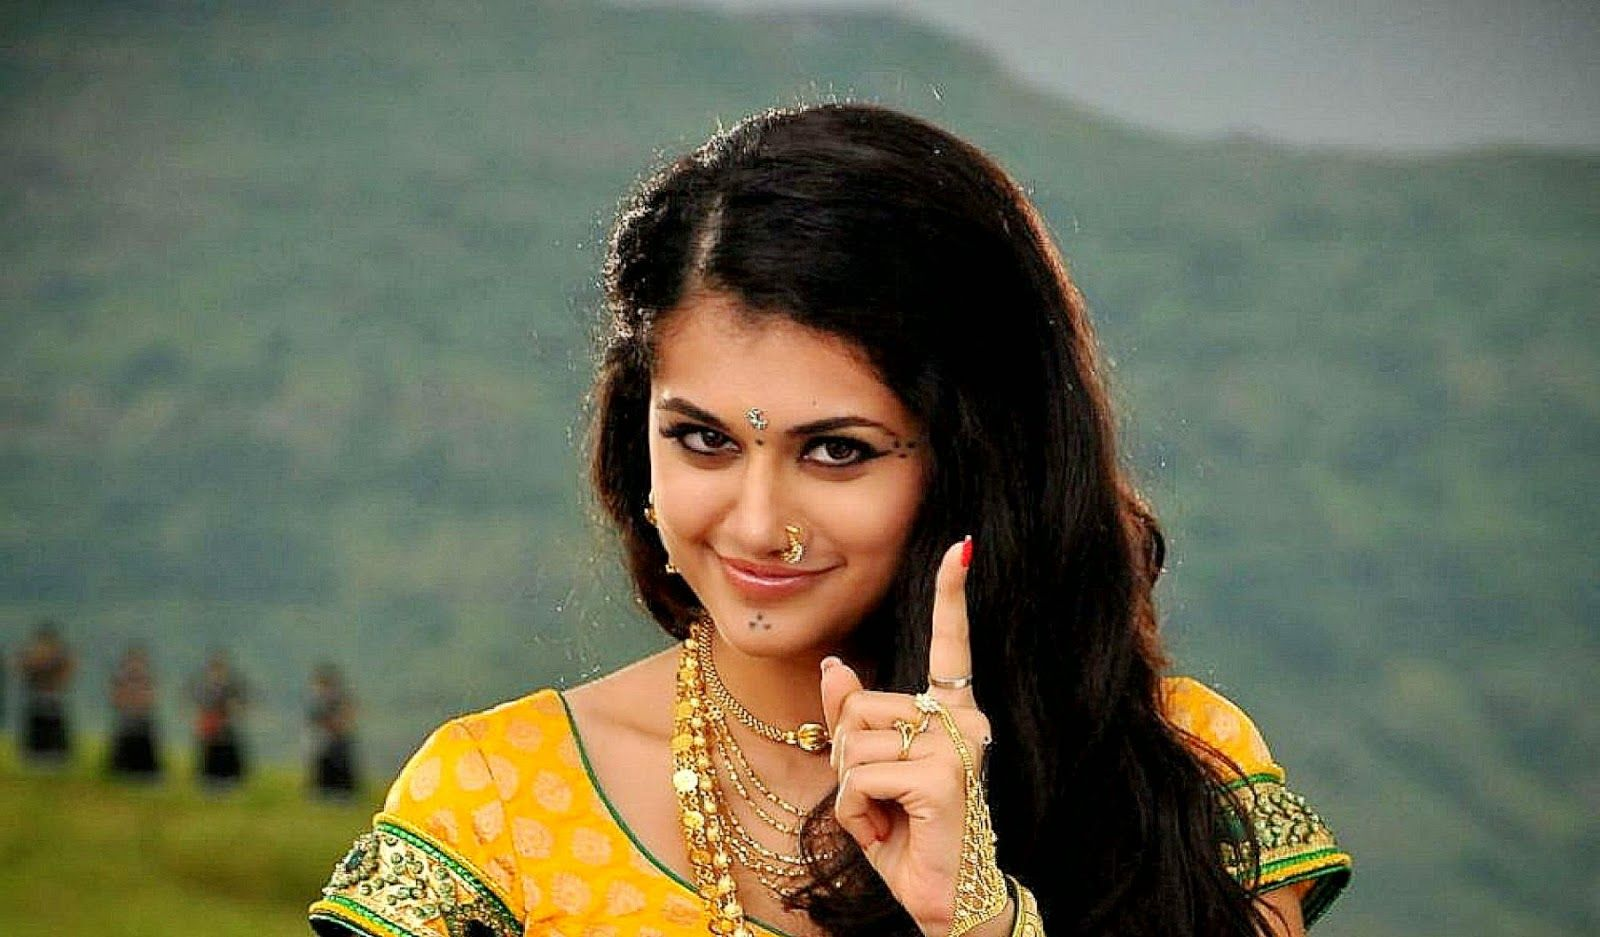 Telugu Actors Hd Wallpapers 53 Wallpapers: Hd Wallpapers Tamil Heroines Free Download